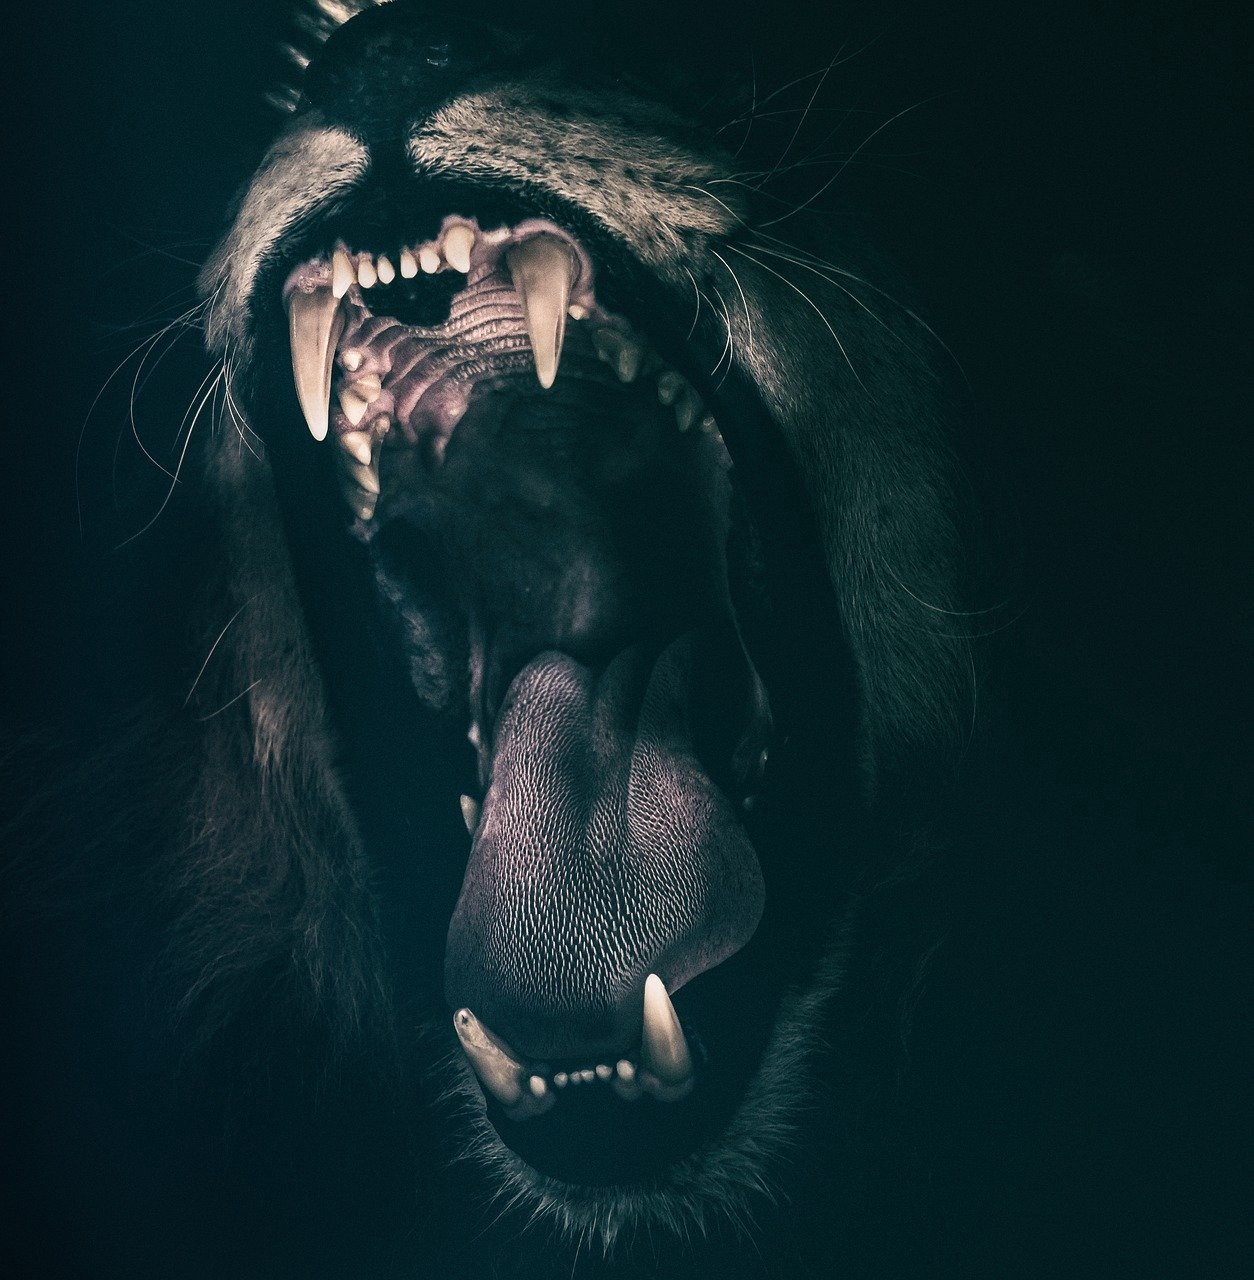 Black and white image of a Lion's jaws. Open wide and attacking.